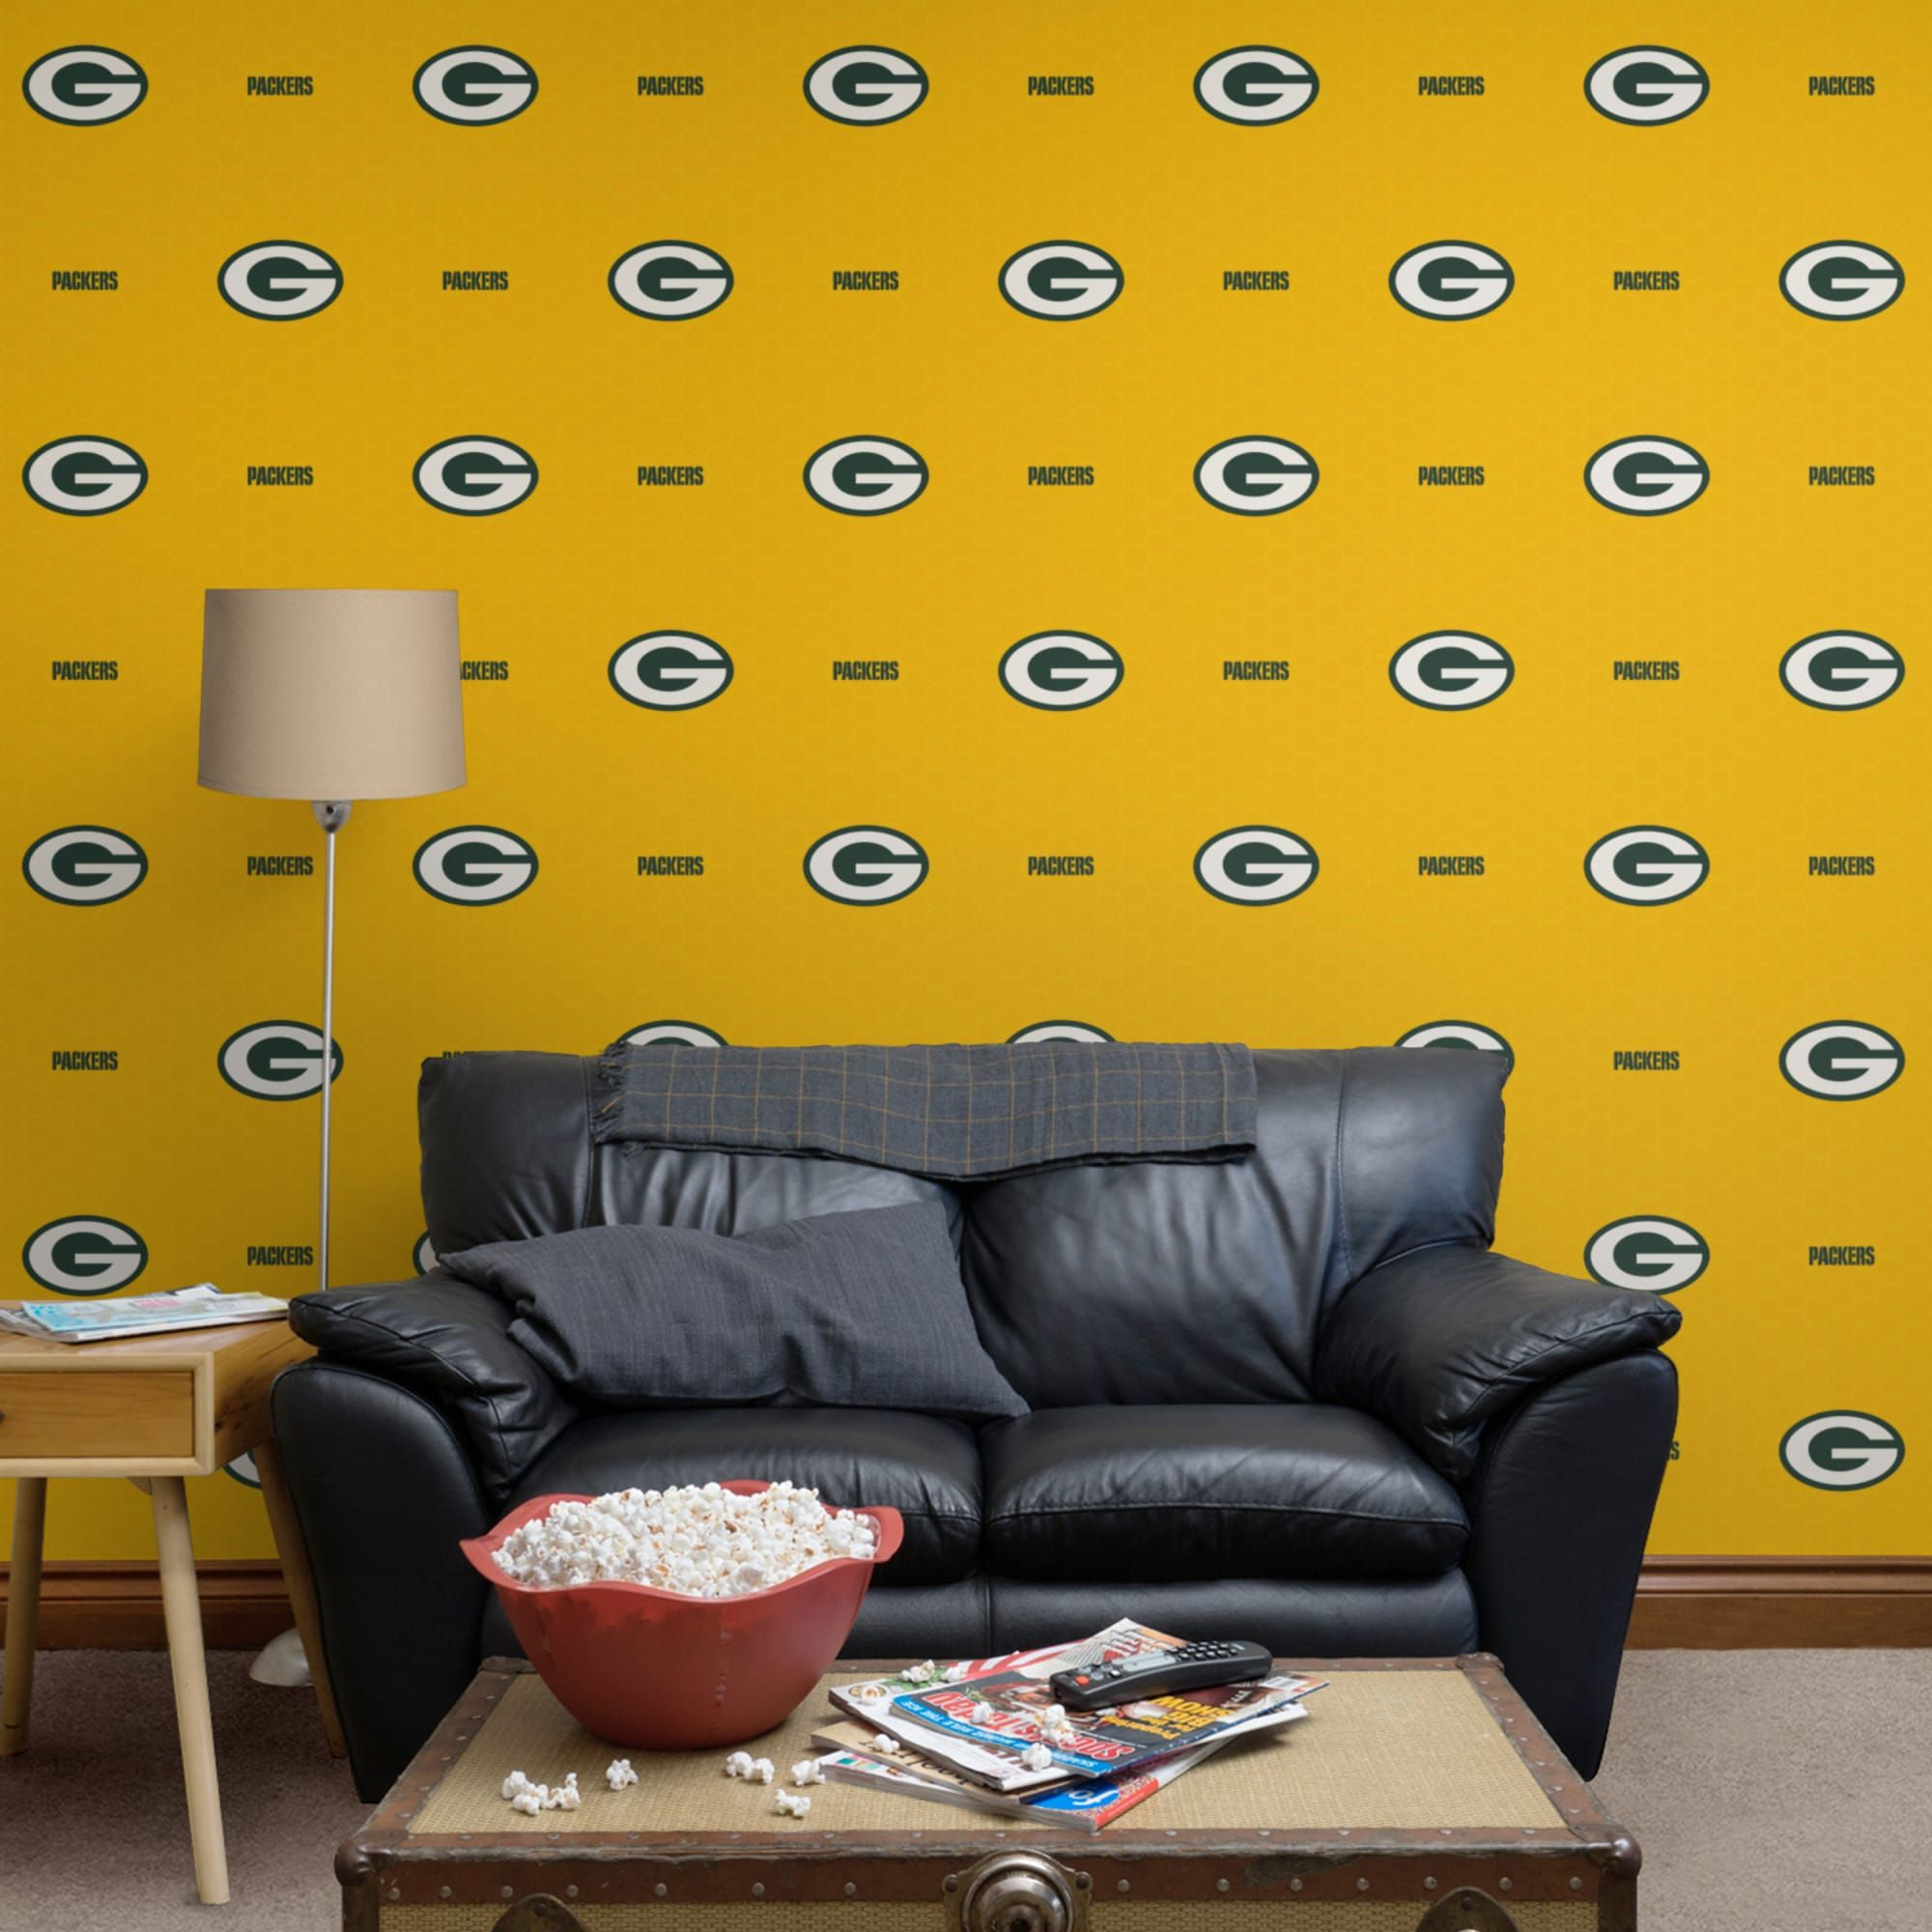 Green Bay Packers Logo Pattern Yellow Officially Licensed Removable Wallpaper Fathead Catalog In 2019 Green Bay Packers Logo Decor Line Patterns